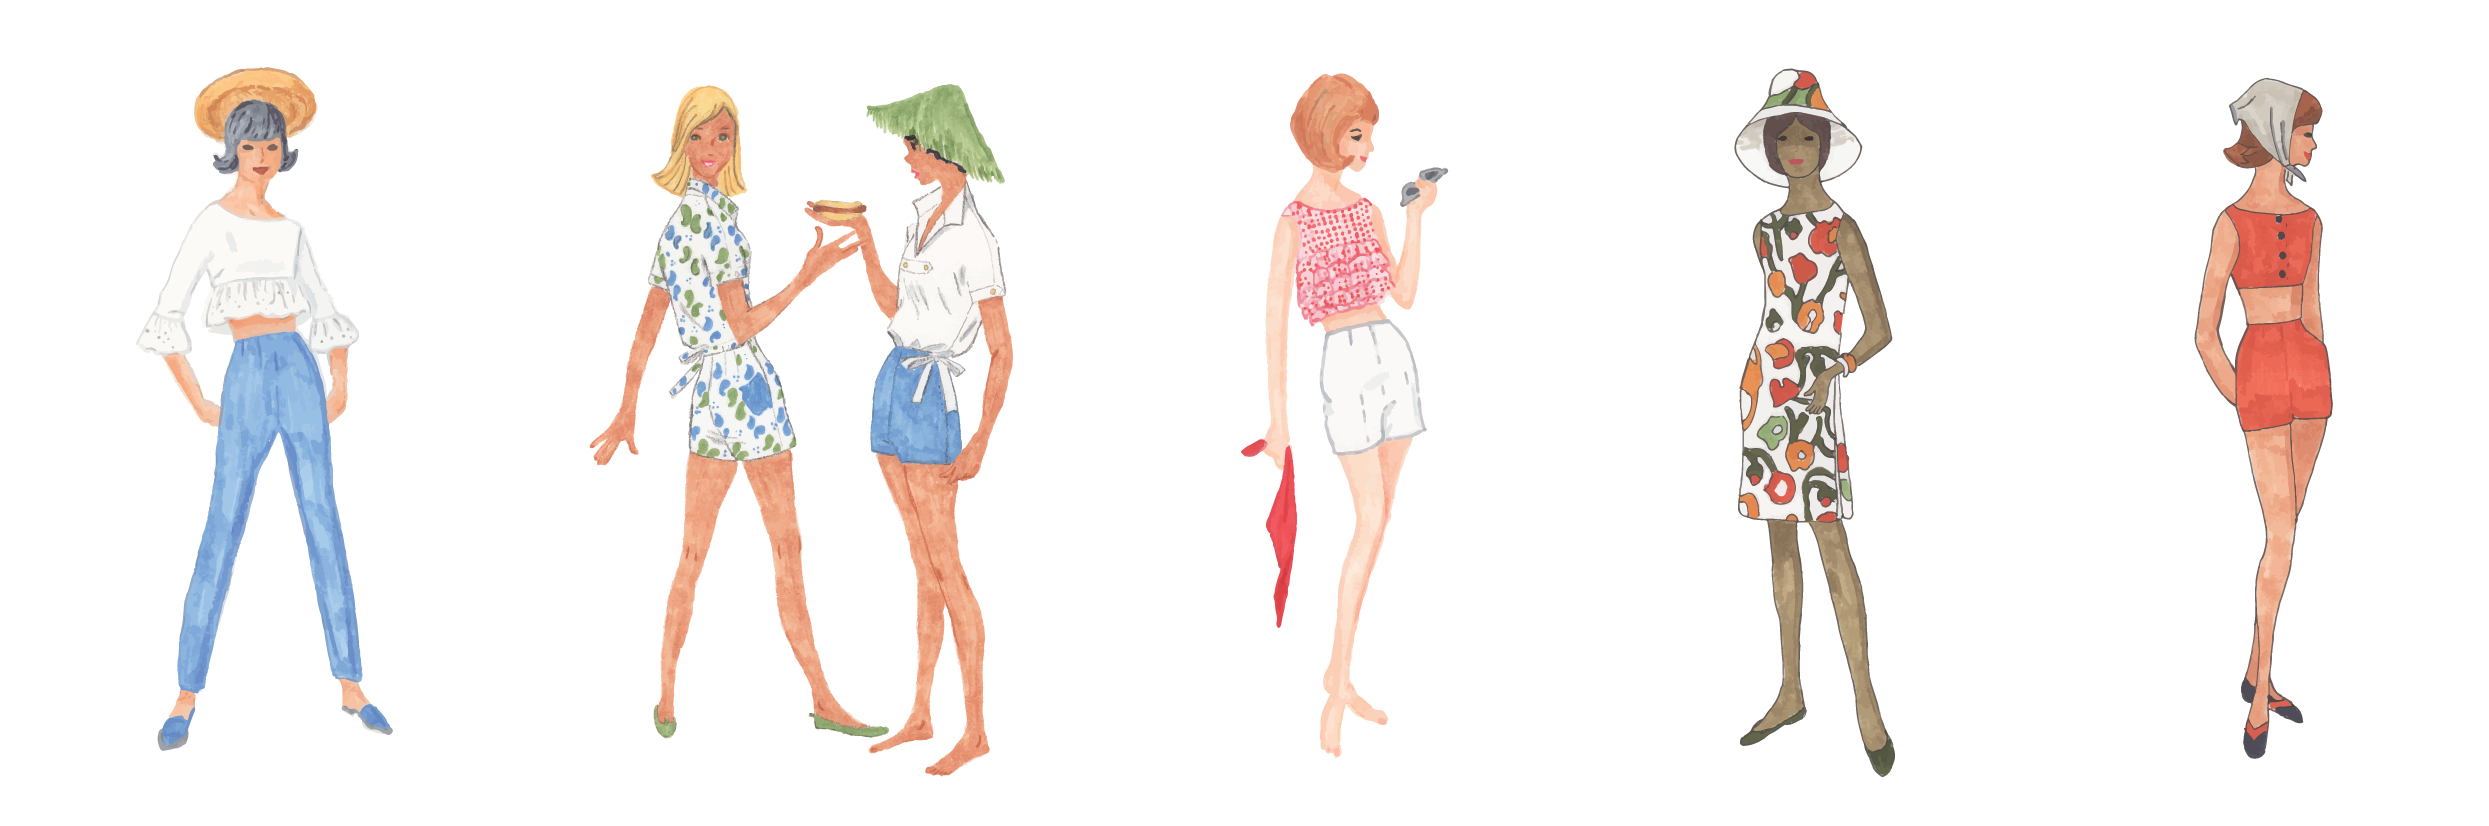 Summer girls note cards-01.png